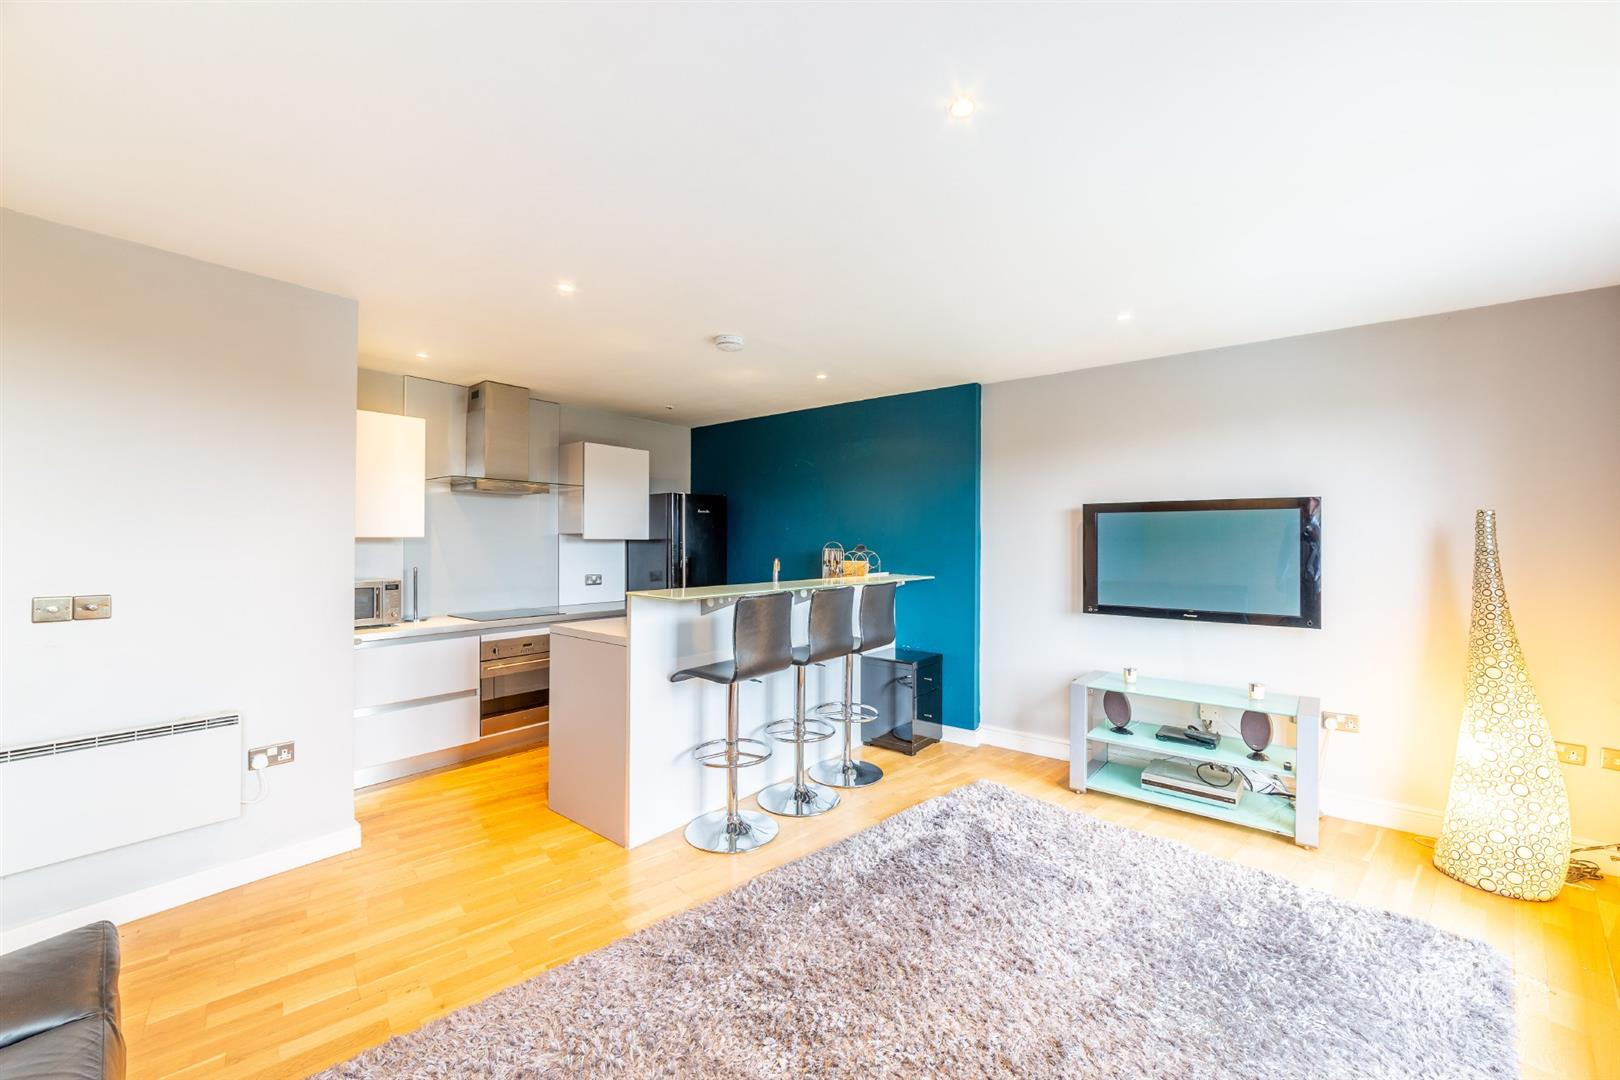 2 bed penthouse for sale in Newcastle Upon Tyne, NE1 3BB 1